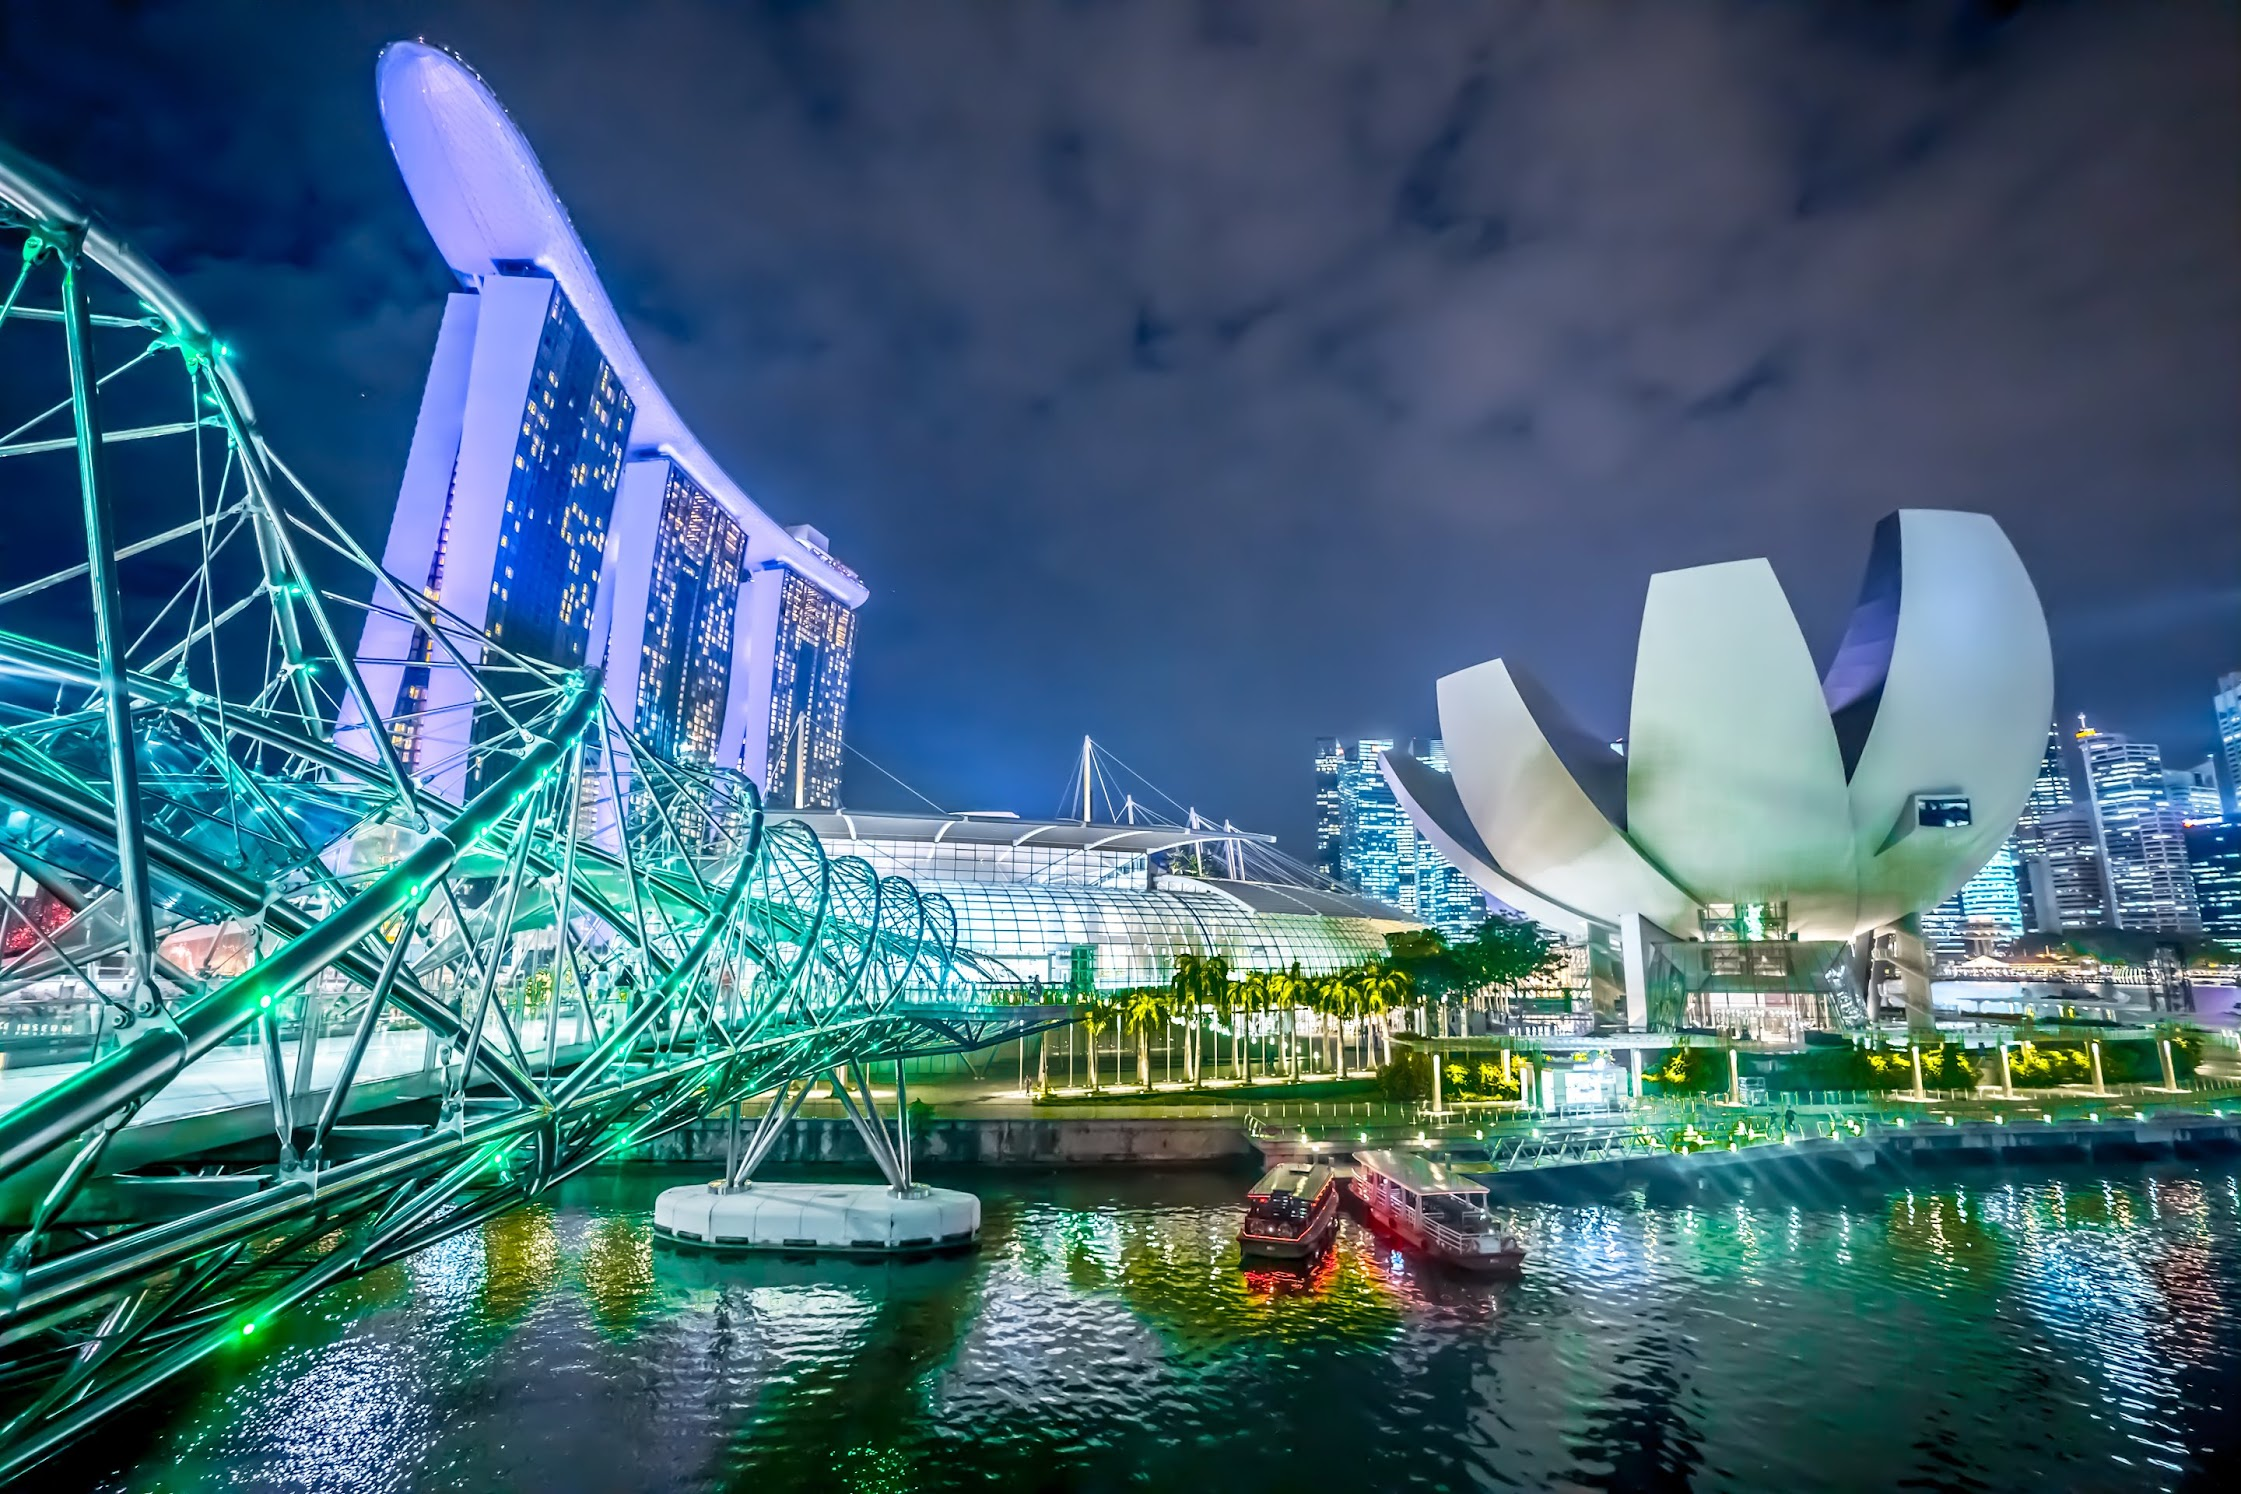 Singapore Helix Bridge2